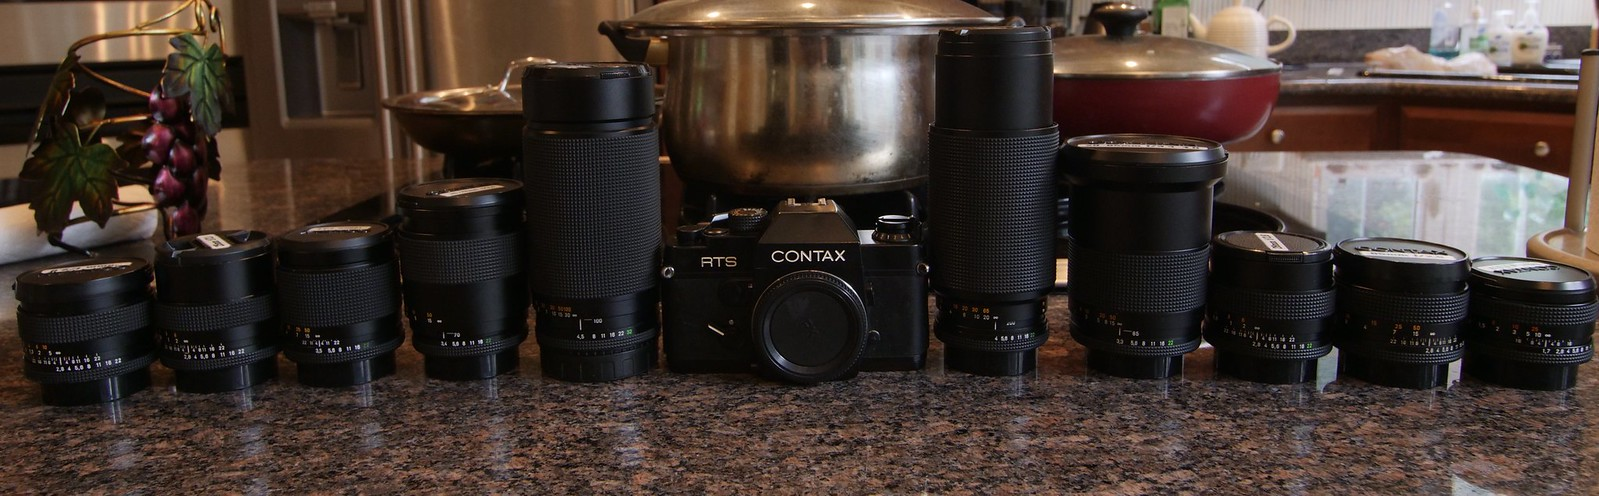 Contax Zeiss Survival Guide [Archive] - Page 17 - REDUSER net